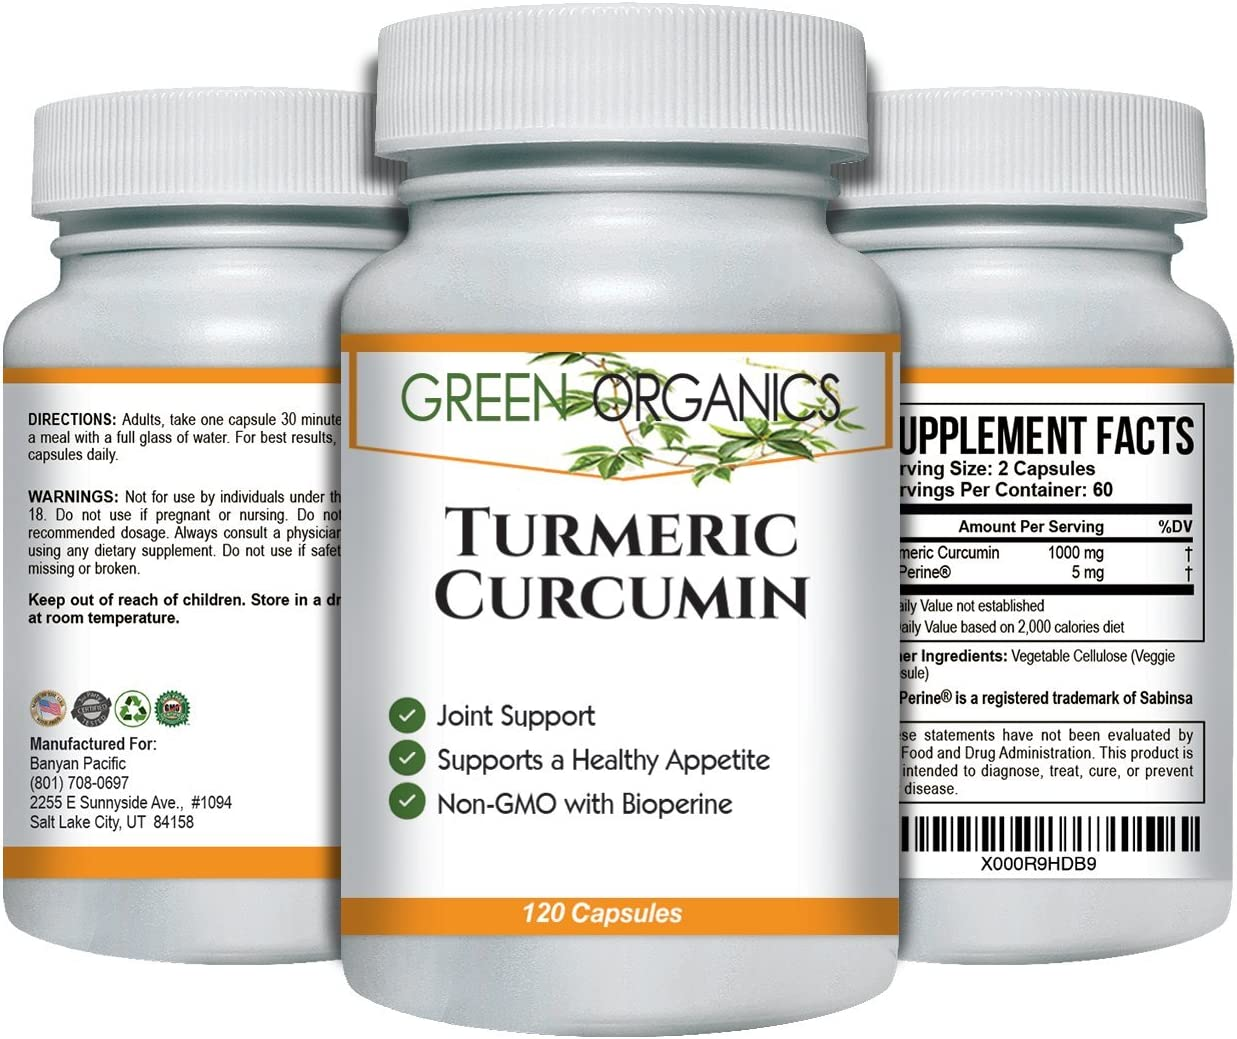 Turmeric Curcumin to Support Joint Comfort Mobility Natural Anti-inflammatory Helps Soothe Aching Joints, Hips, and Pain Throughout Body 1000mg 120 Capsules